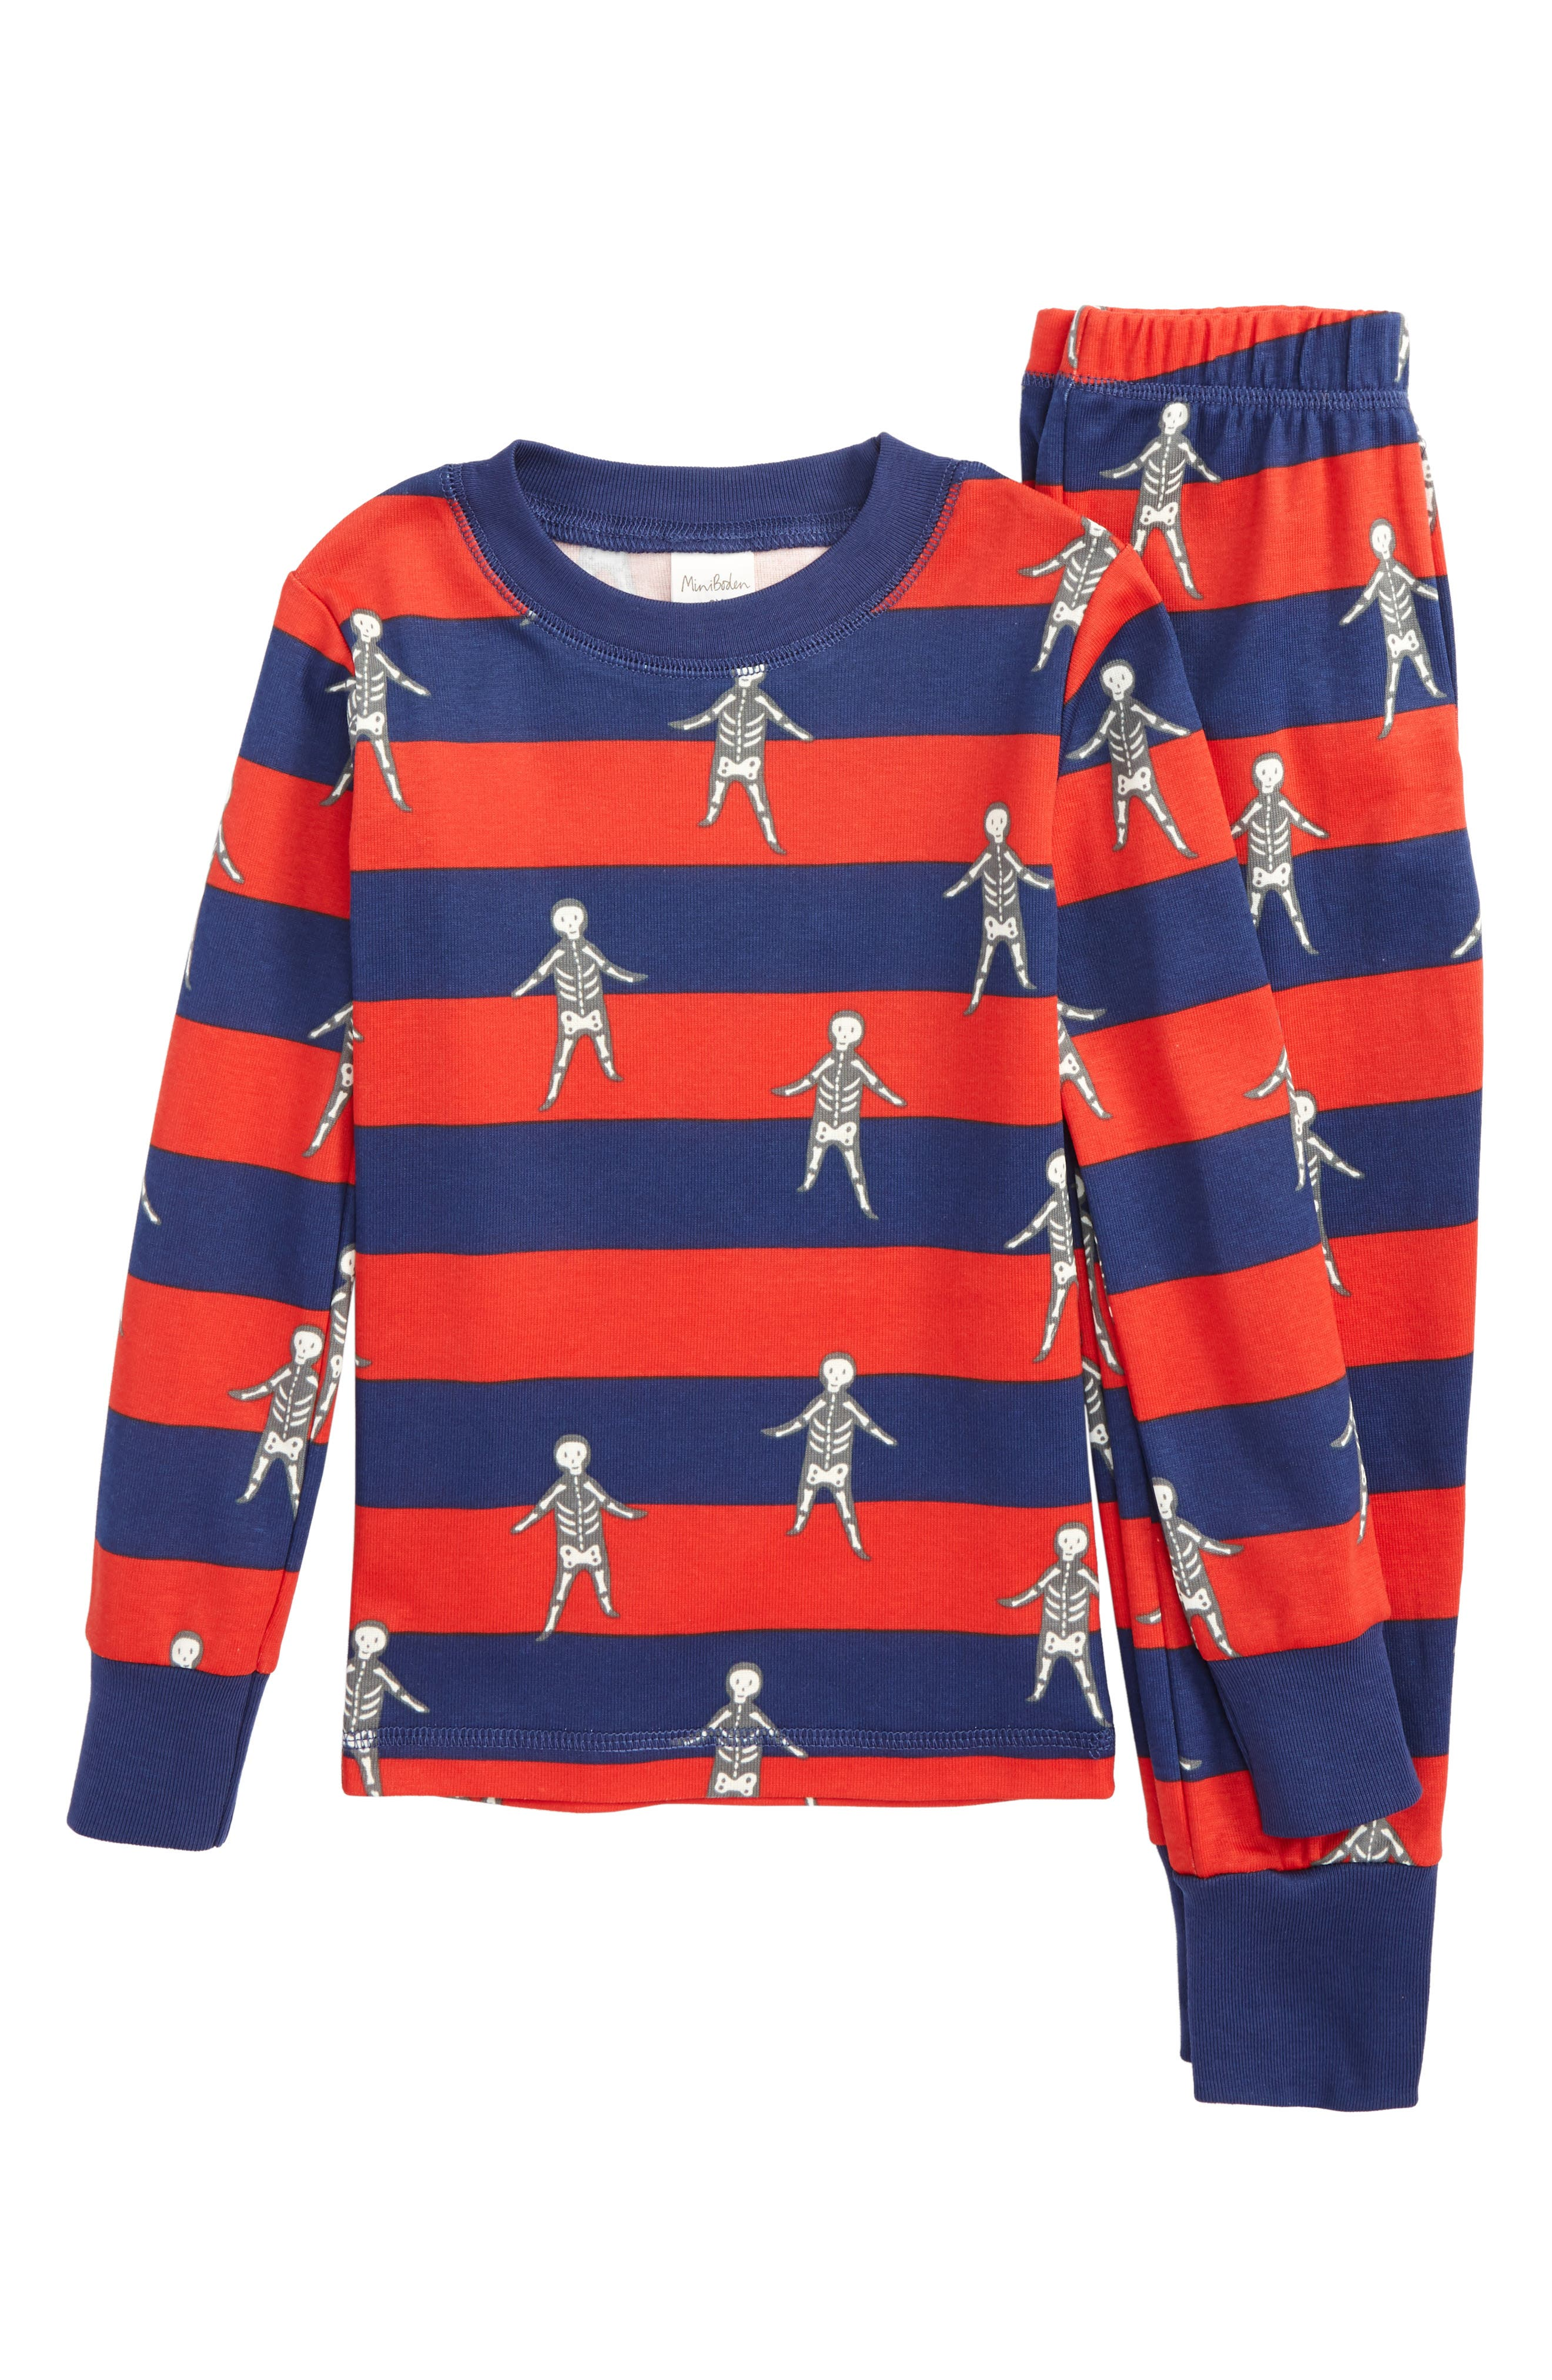 Glow in the Dark Fitted Two-Piece Pajamas,                         Main,                         color, Blue Beacon/ Ziggy Red